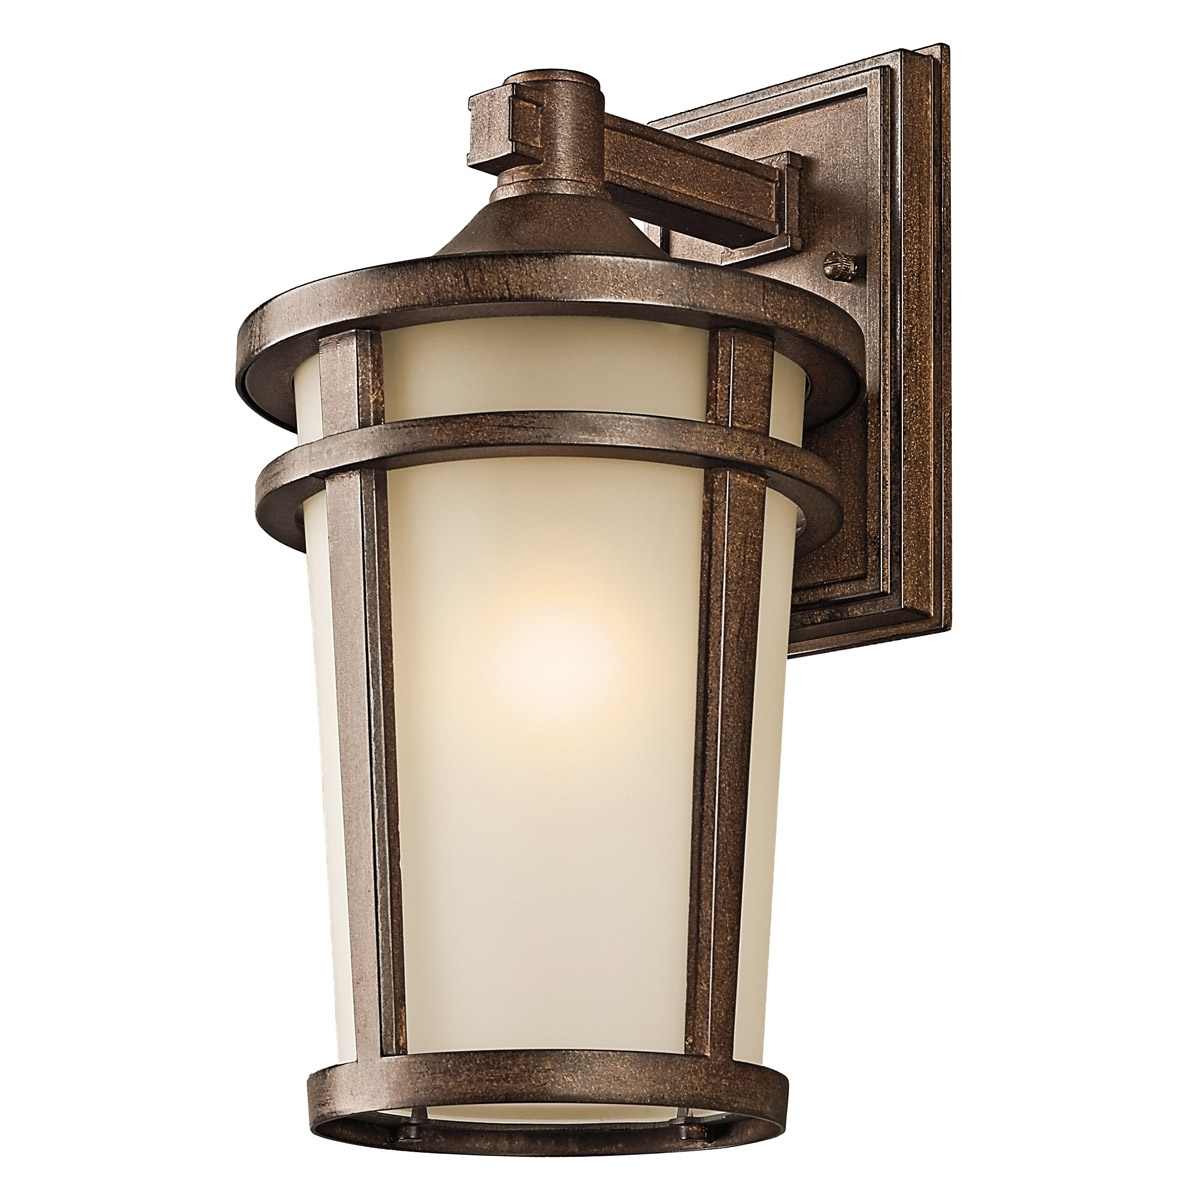 Newest Outdoor Mounted Lanterns Inside Kichler 49072Bst Atwood Outdoor Wall Mount Lantern (View 7 of 20)